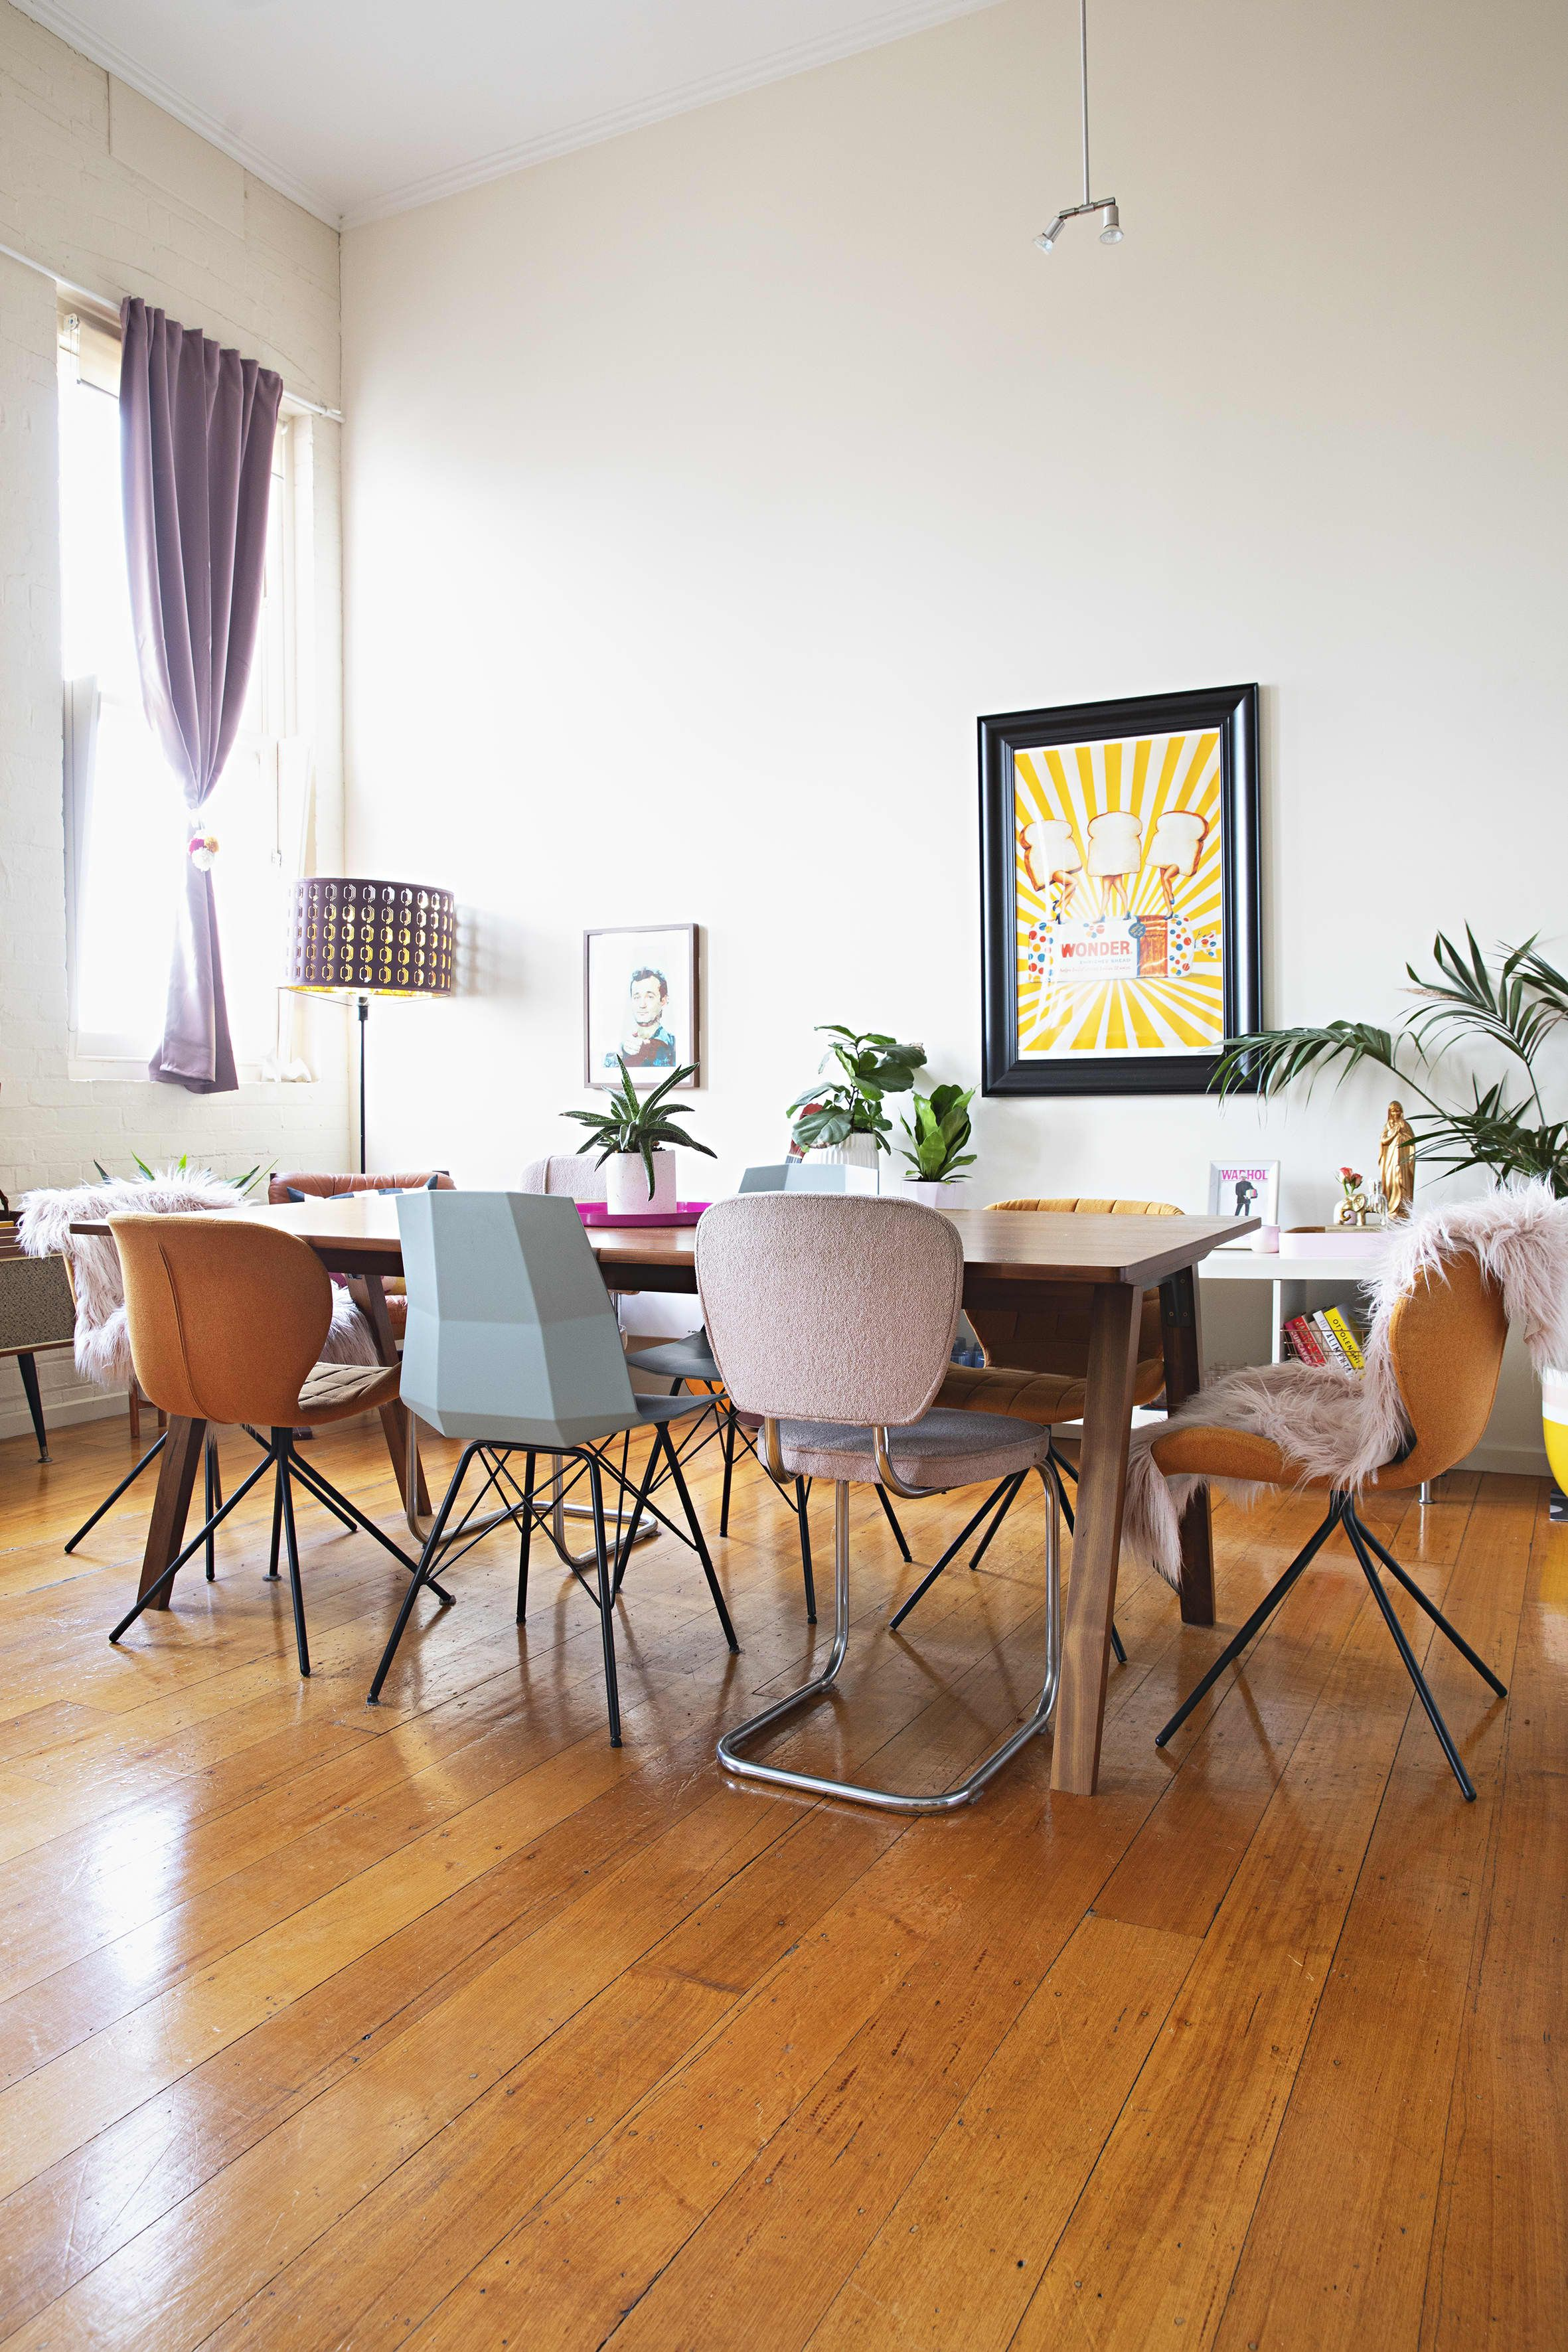 This Melbourne Rental Home Is Fun and Pastel Colored